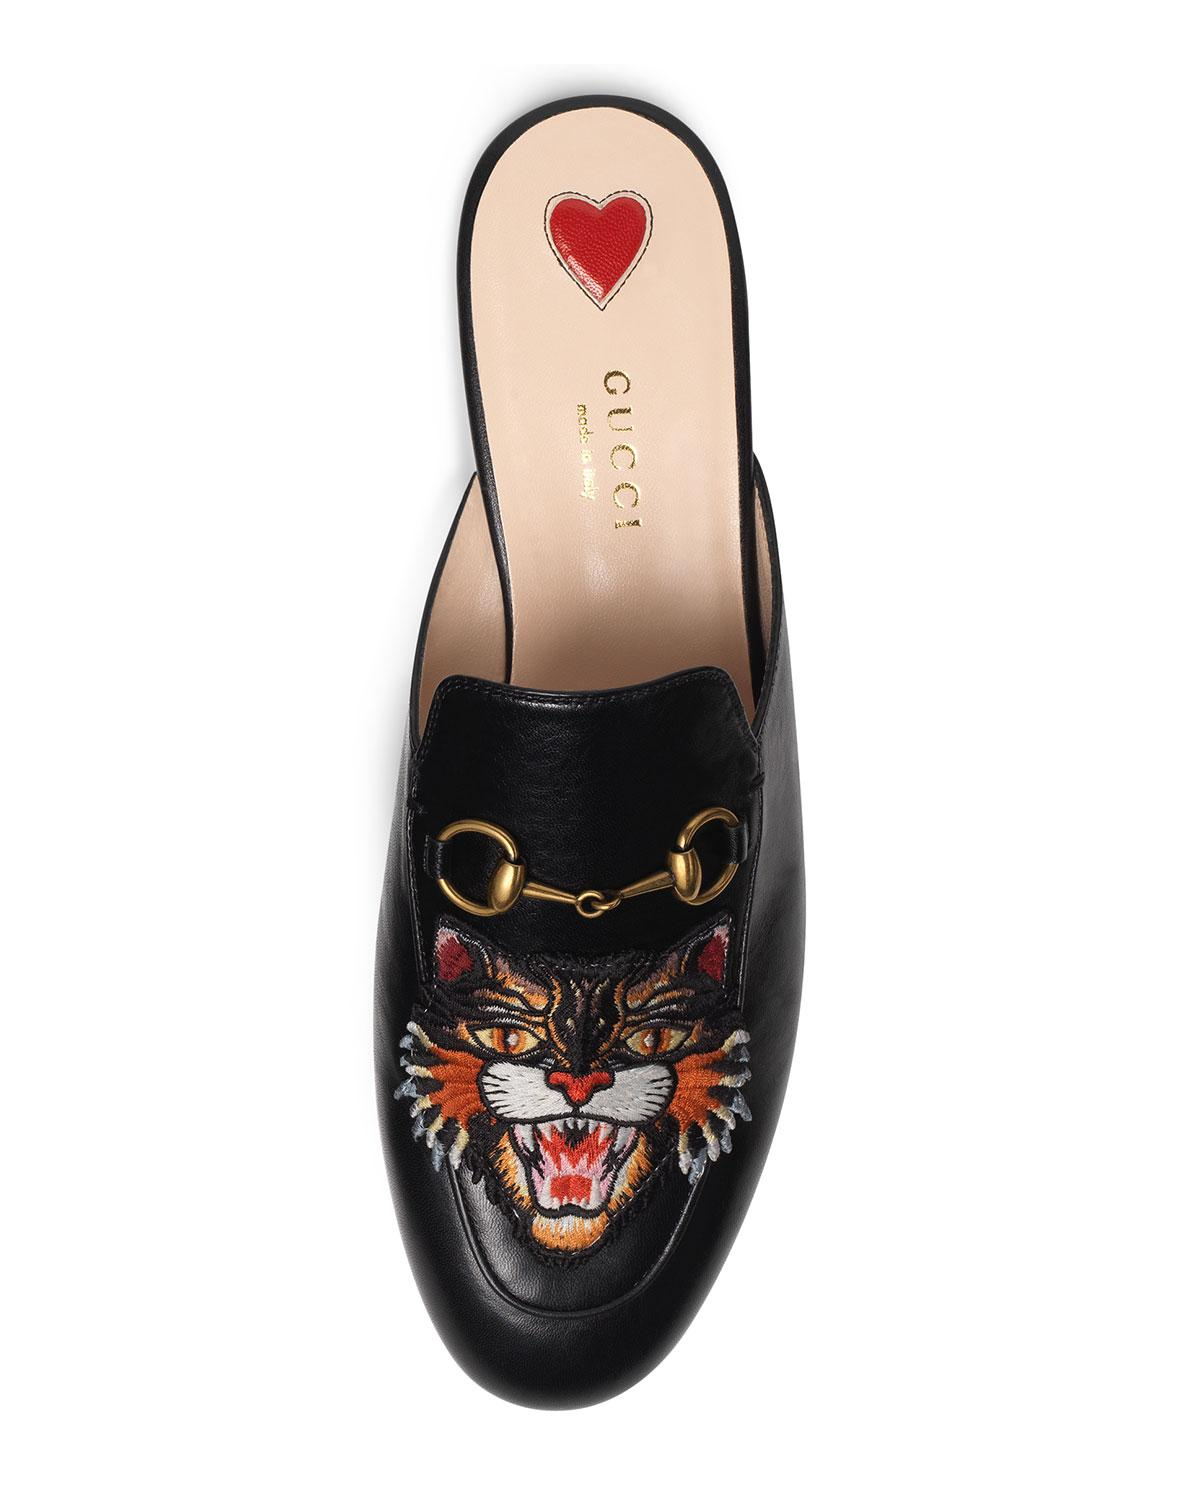 ee0c0ea88ee Lyst - Gucci Princetown Tiger-embroidered Loafer Mule in Black